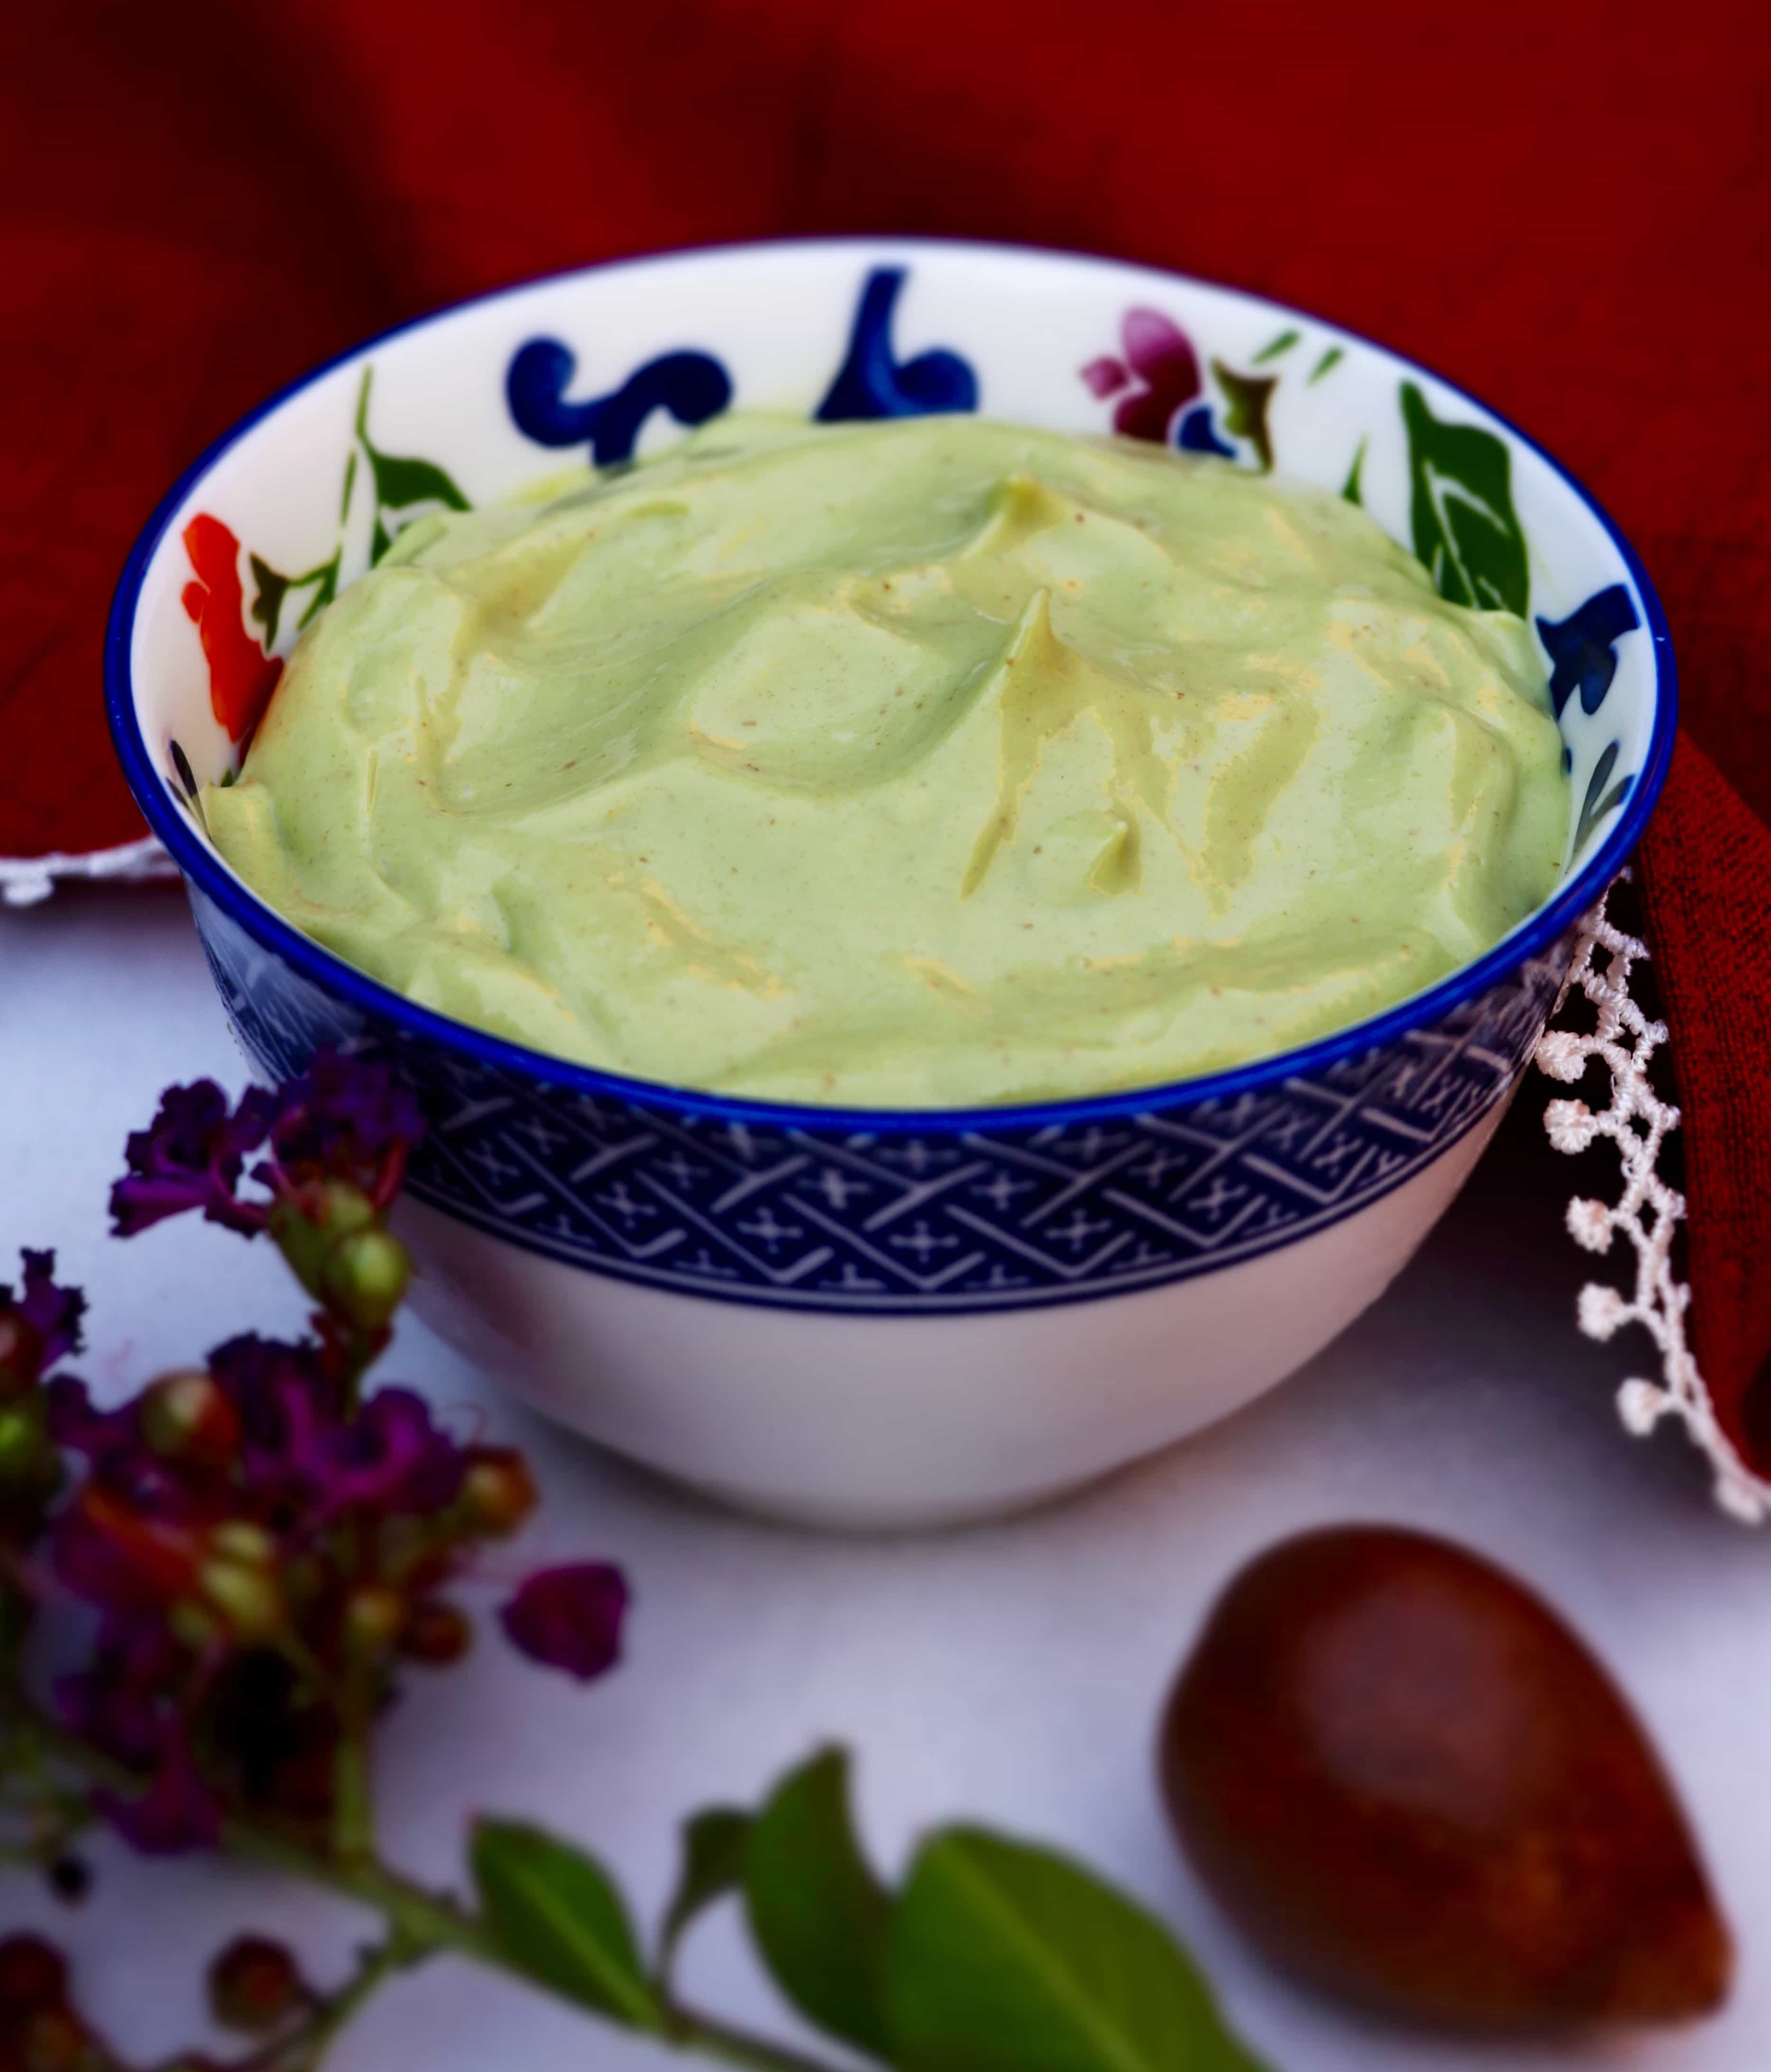 creamy avocado pudding